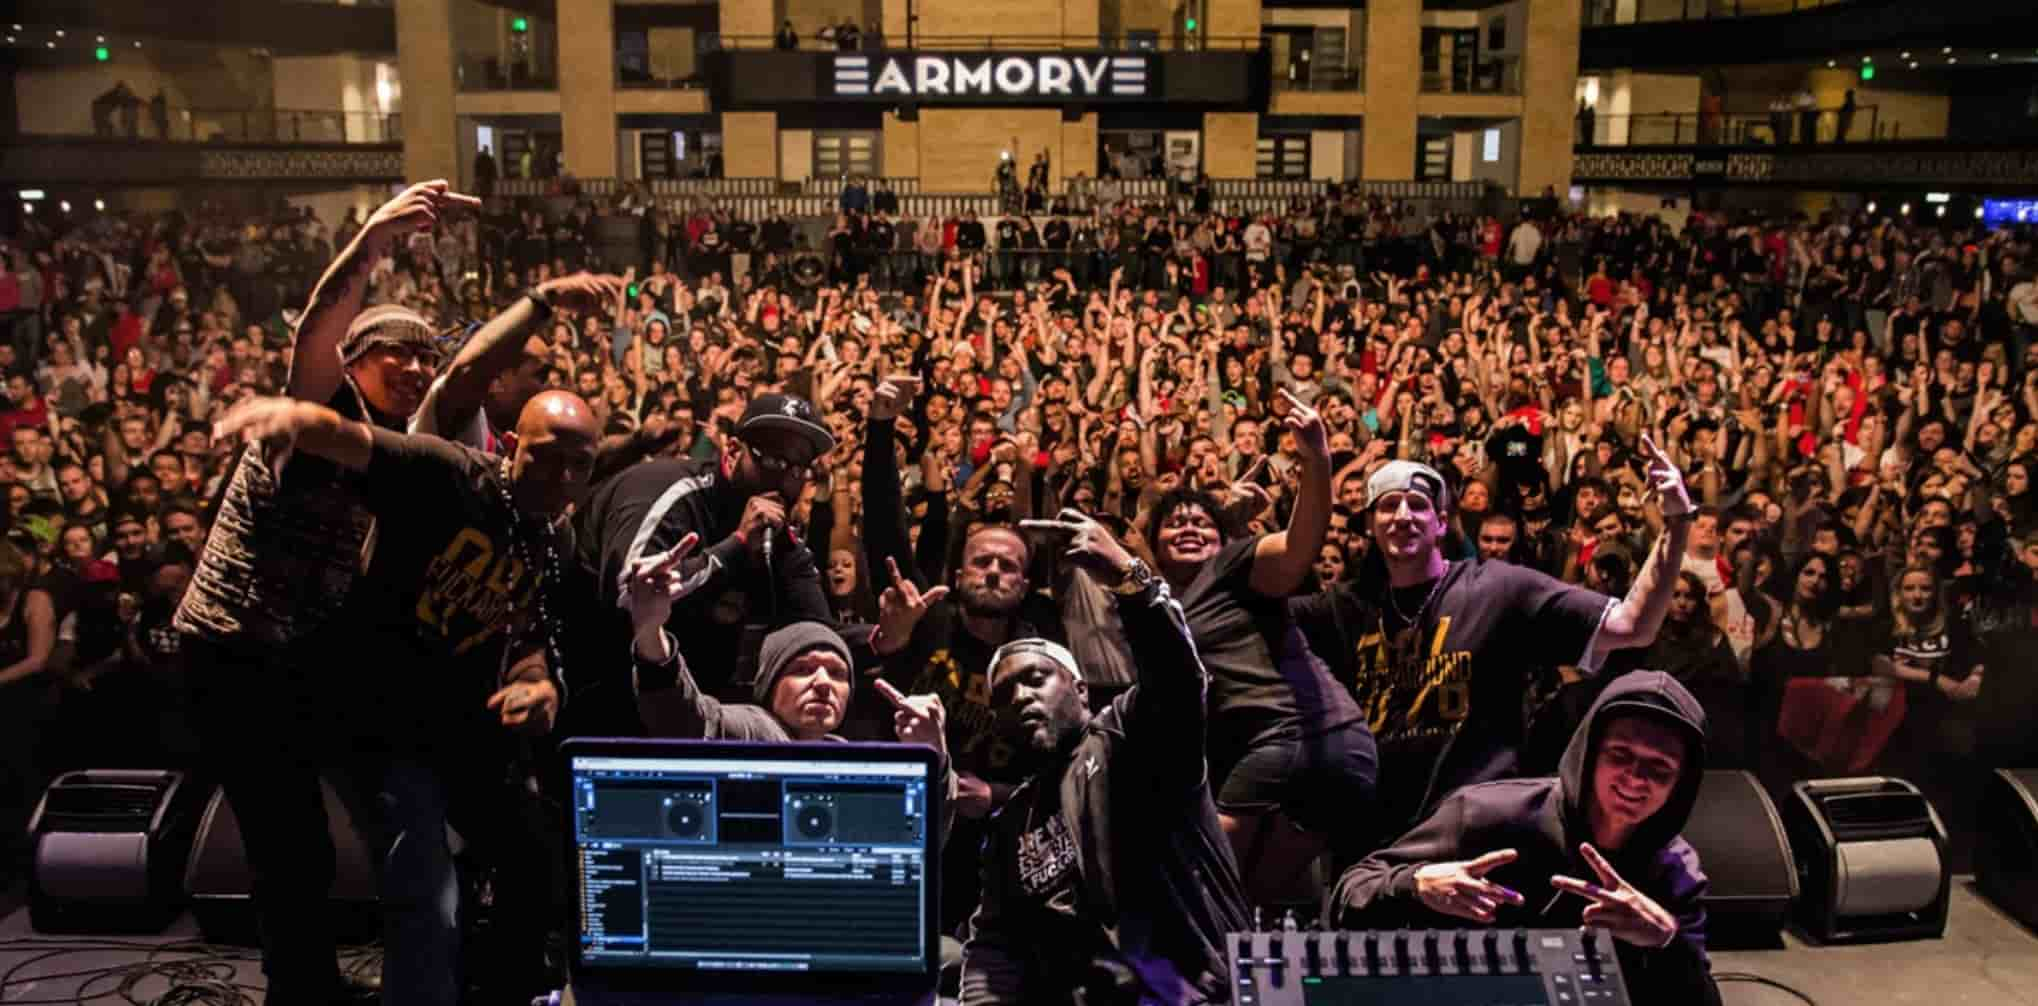 Nofuxaroundgang NFG Minneapolis Live performance armory rap